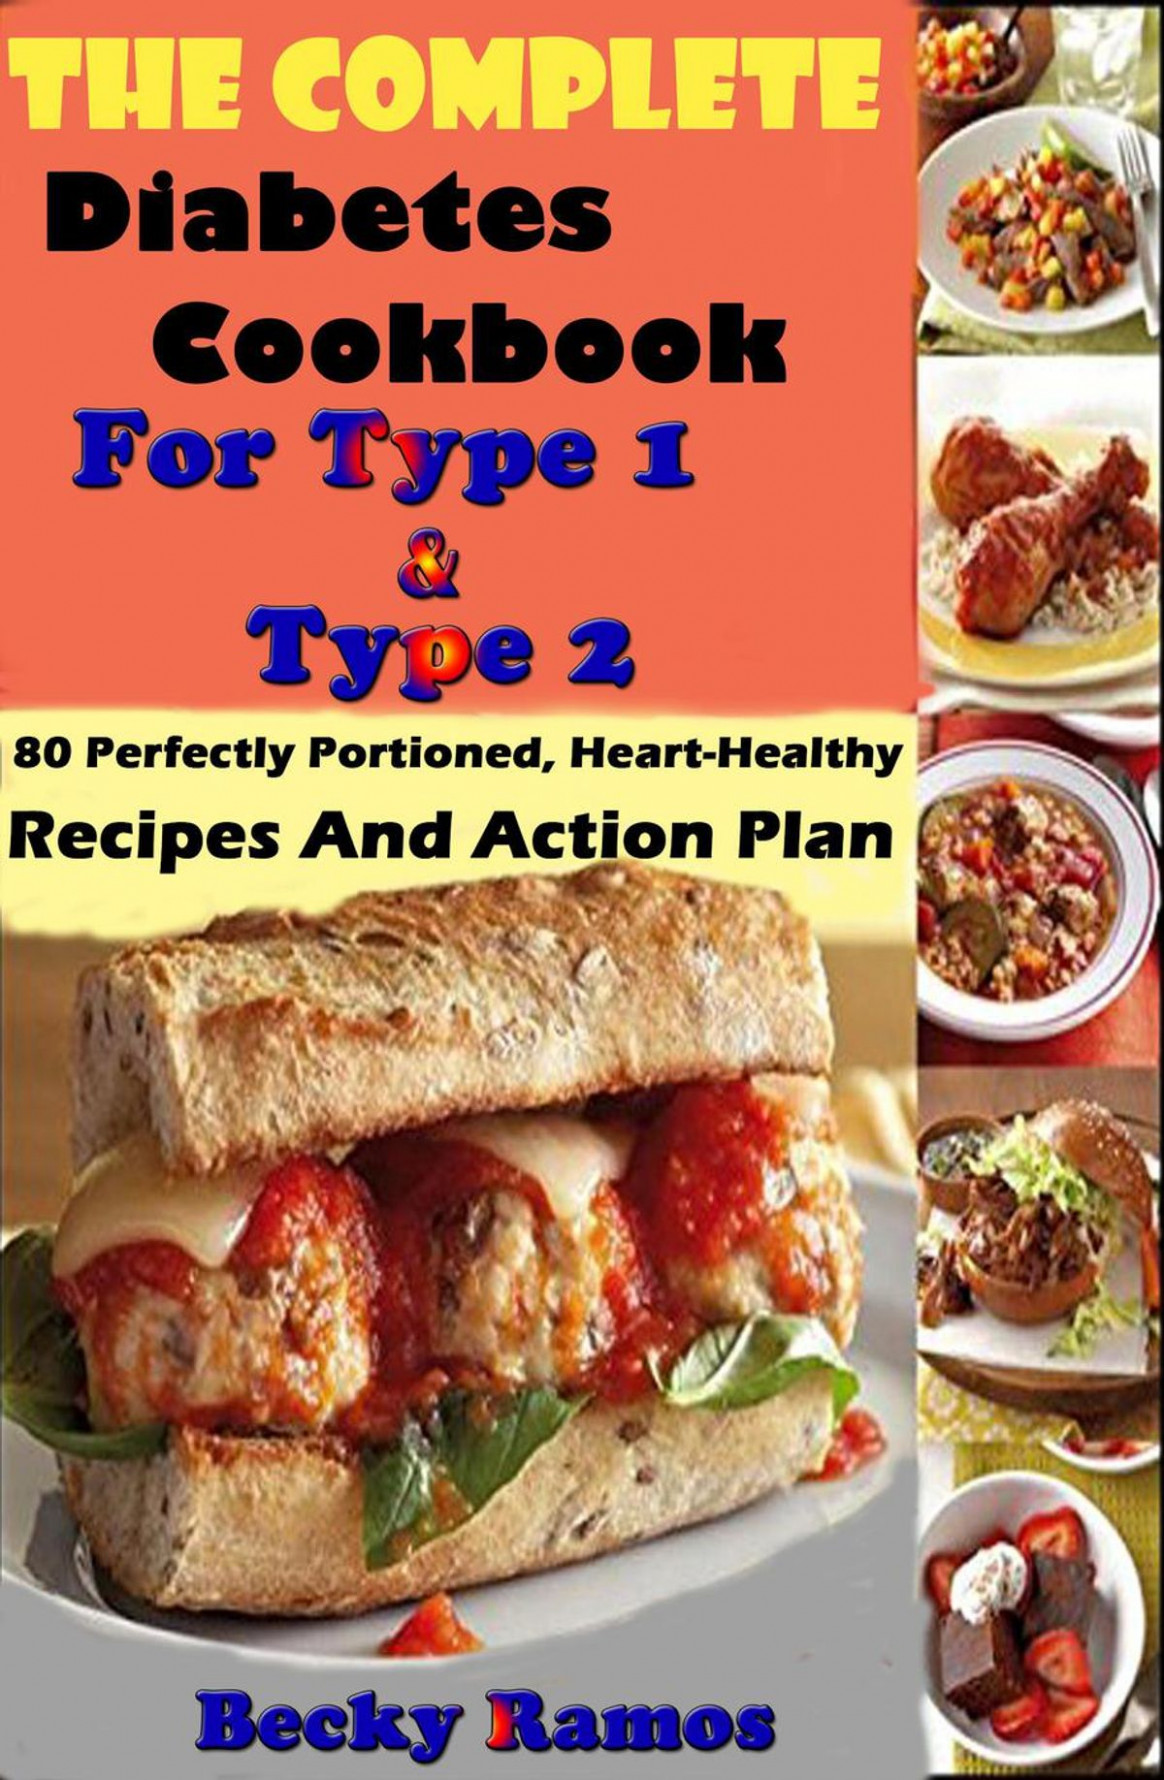 The Complete Diabetes Cookbook For Type 15 & Type 15: 15 Perfectly Portioned,  Heart-Healthy, Recipes And Action Plan ebook by Becky Ramos - Rakuten Kobo - recipes for a healthy heart